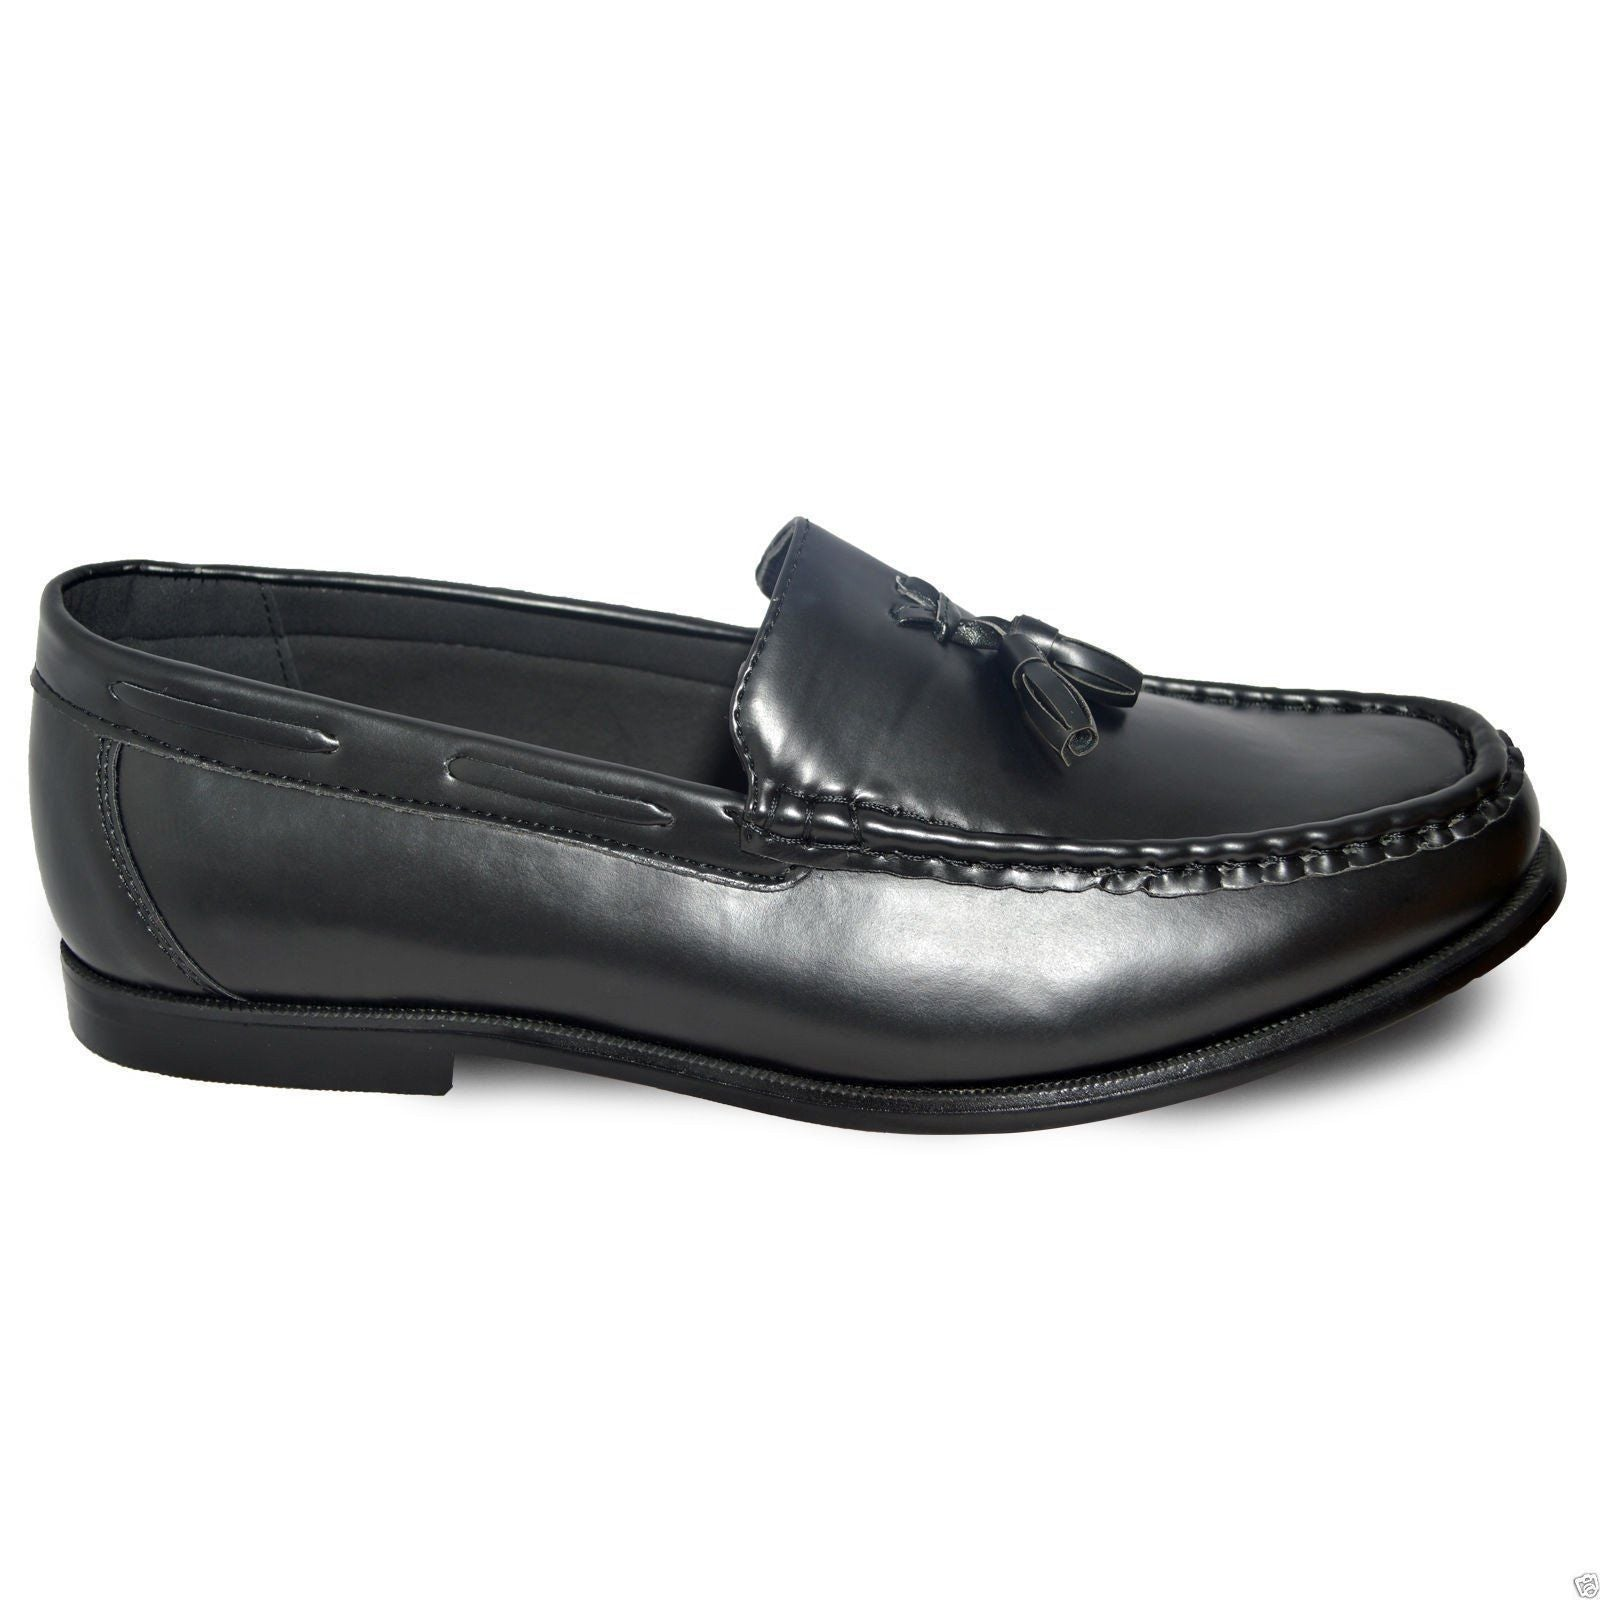 967fb8f635 Mens Smart Tassel Loafers Driving Formal Office Shoes